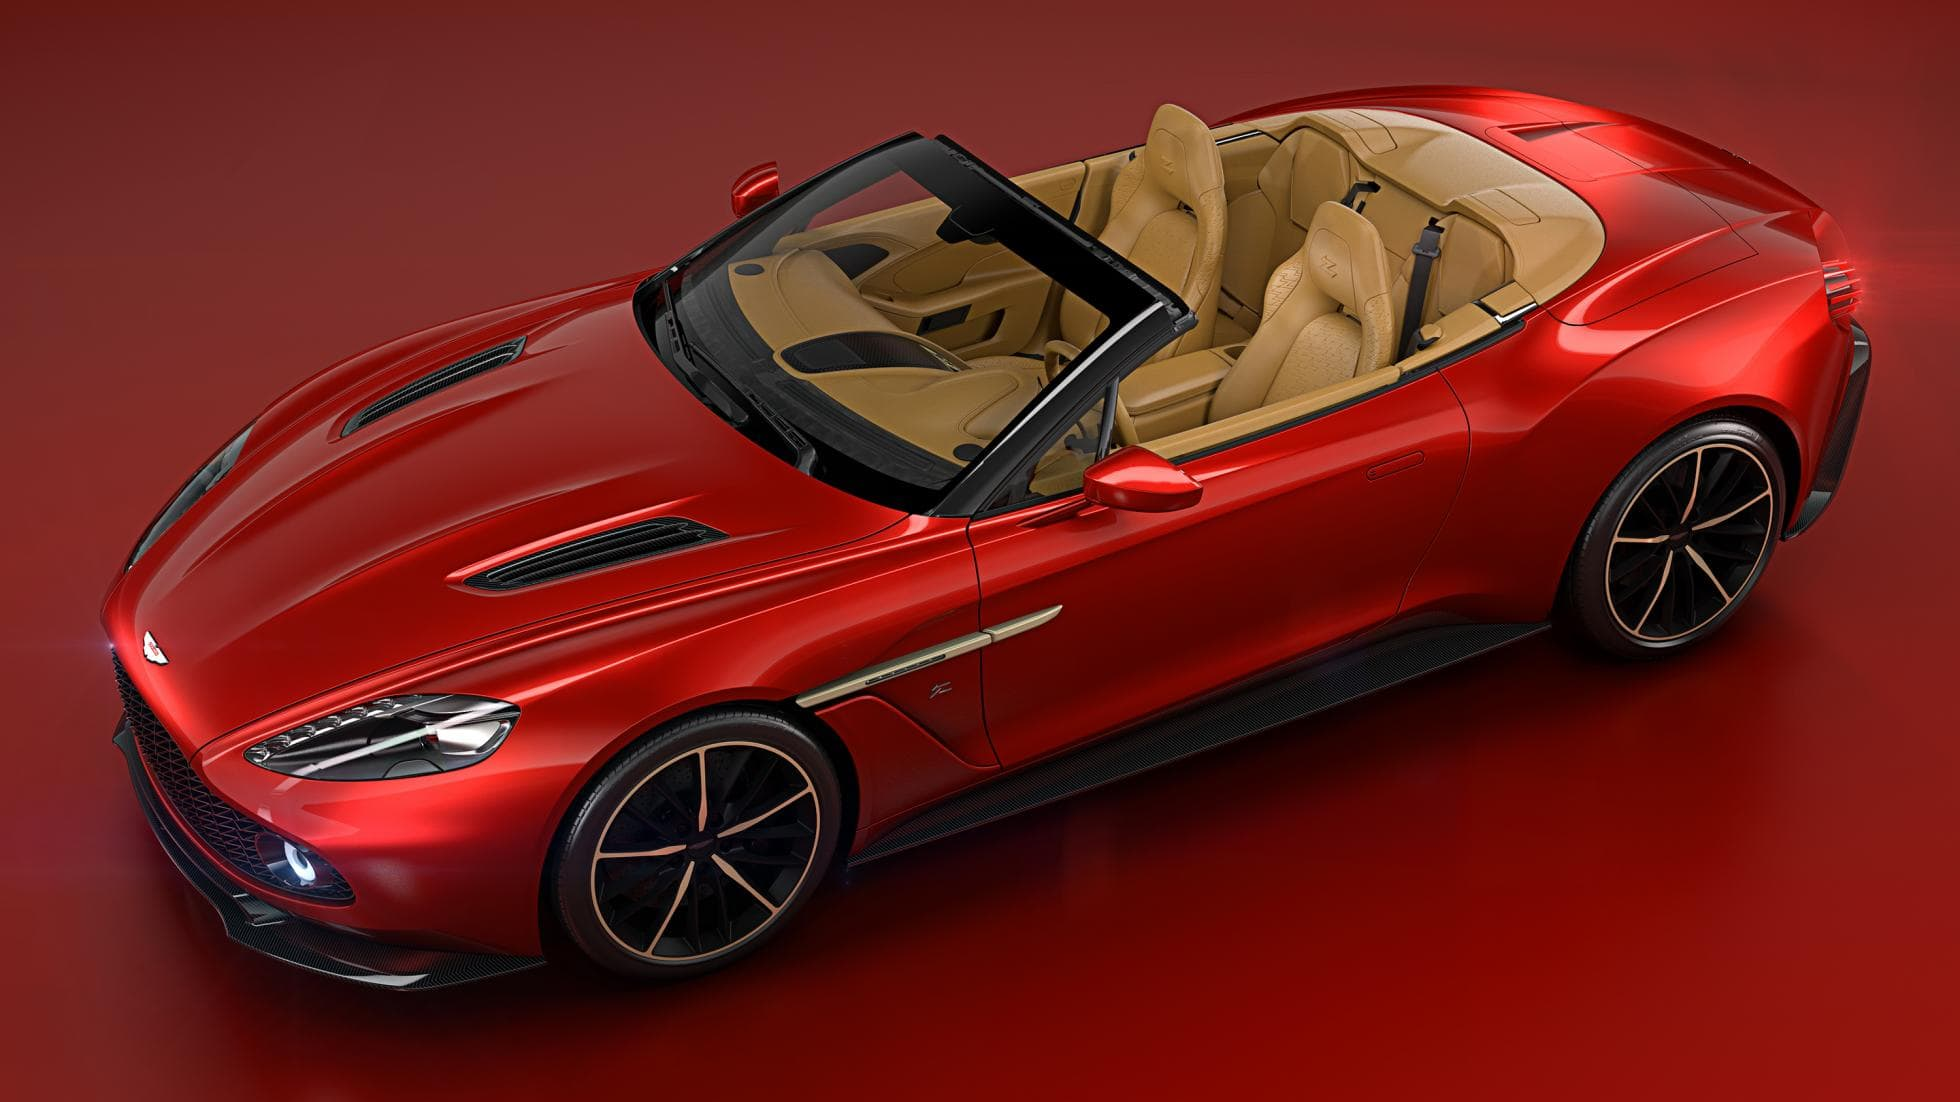 Aston Martin Vanquish Zagato Widescreen for desktop